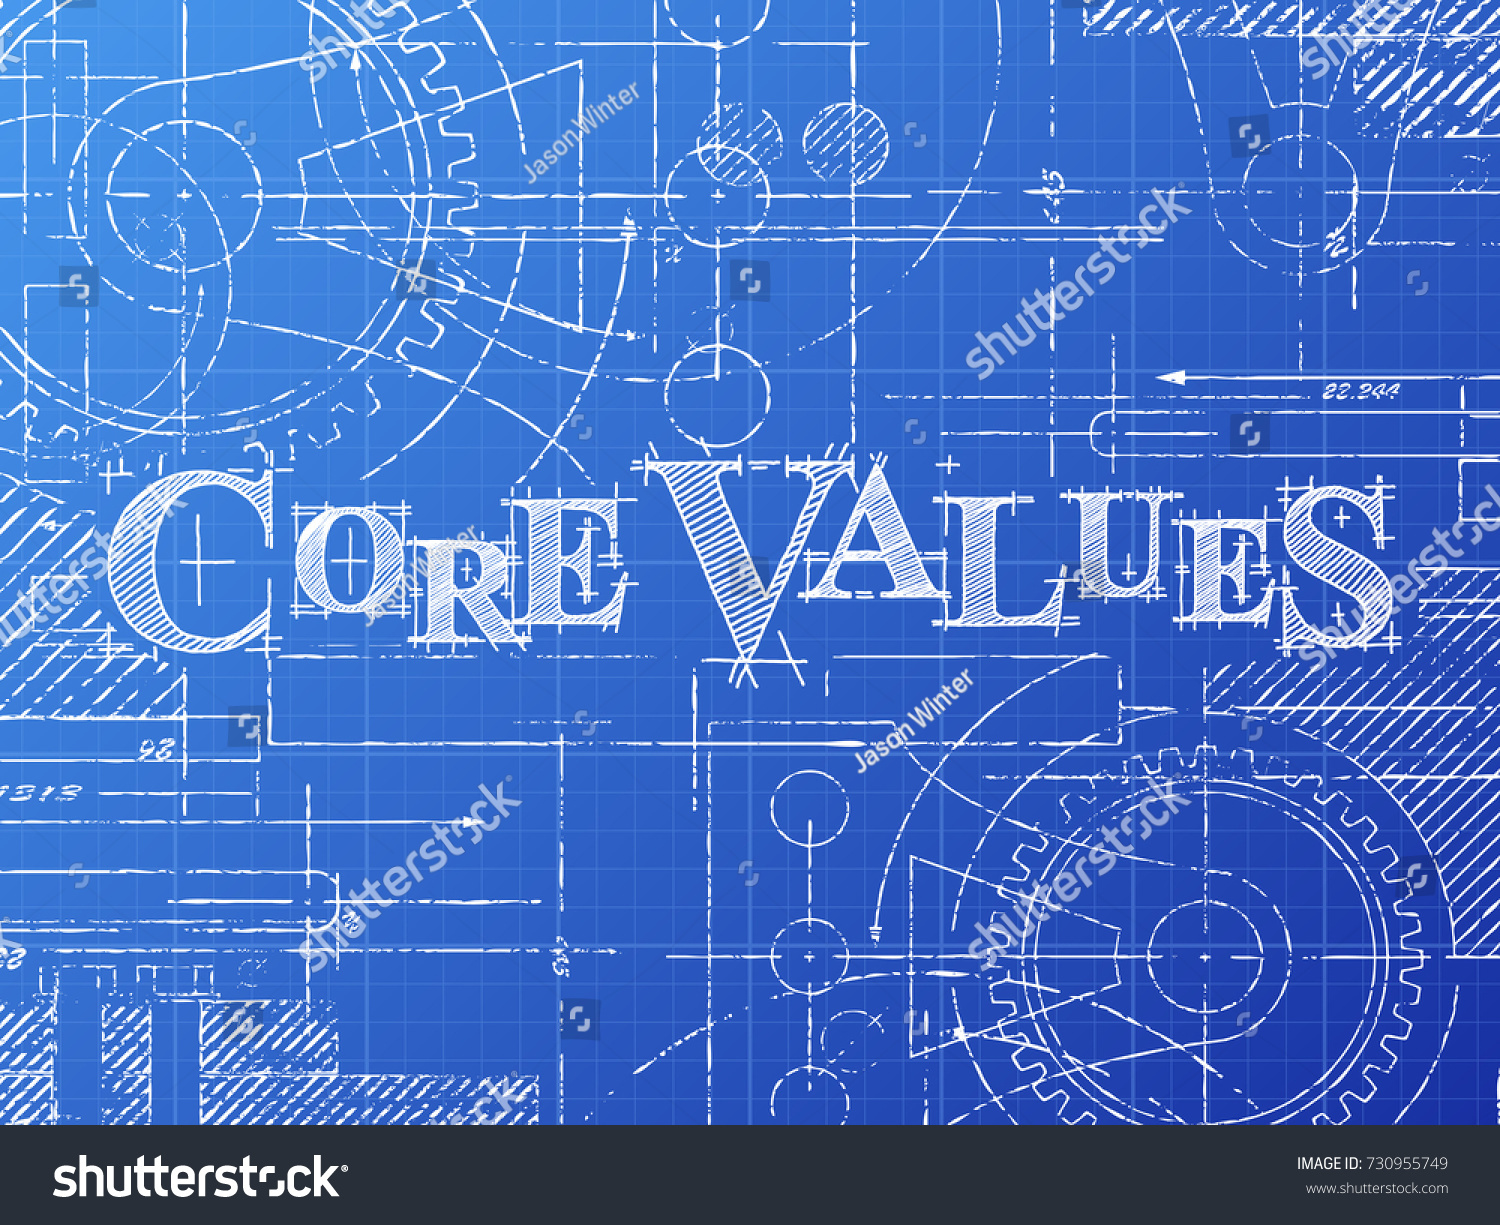 Core values text gear wheels hand stock vector 730955749 core values text with gear wheels hand drawn on blueprint technical drawing background malvernweather Image collections